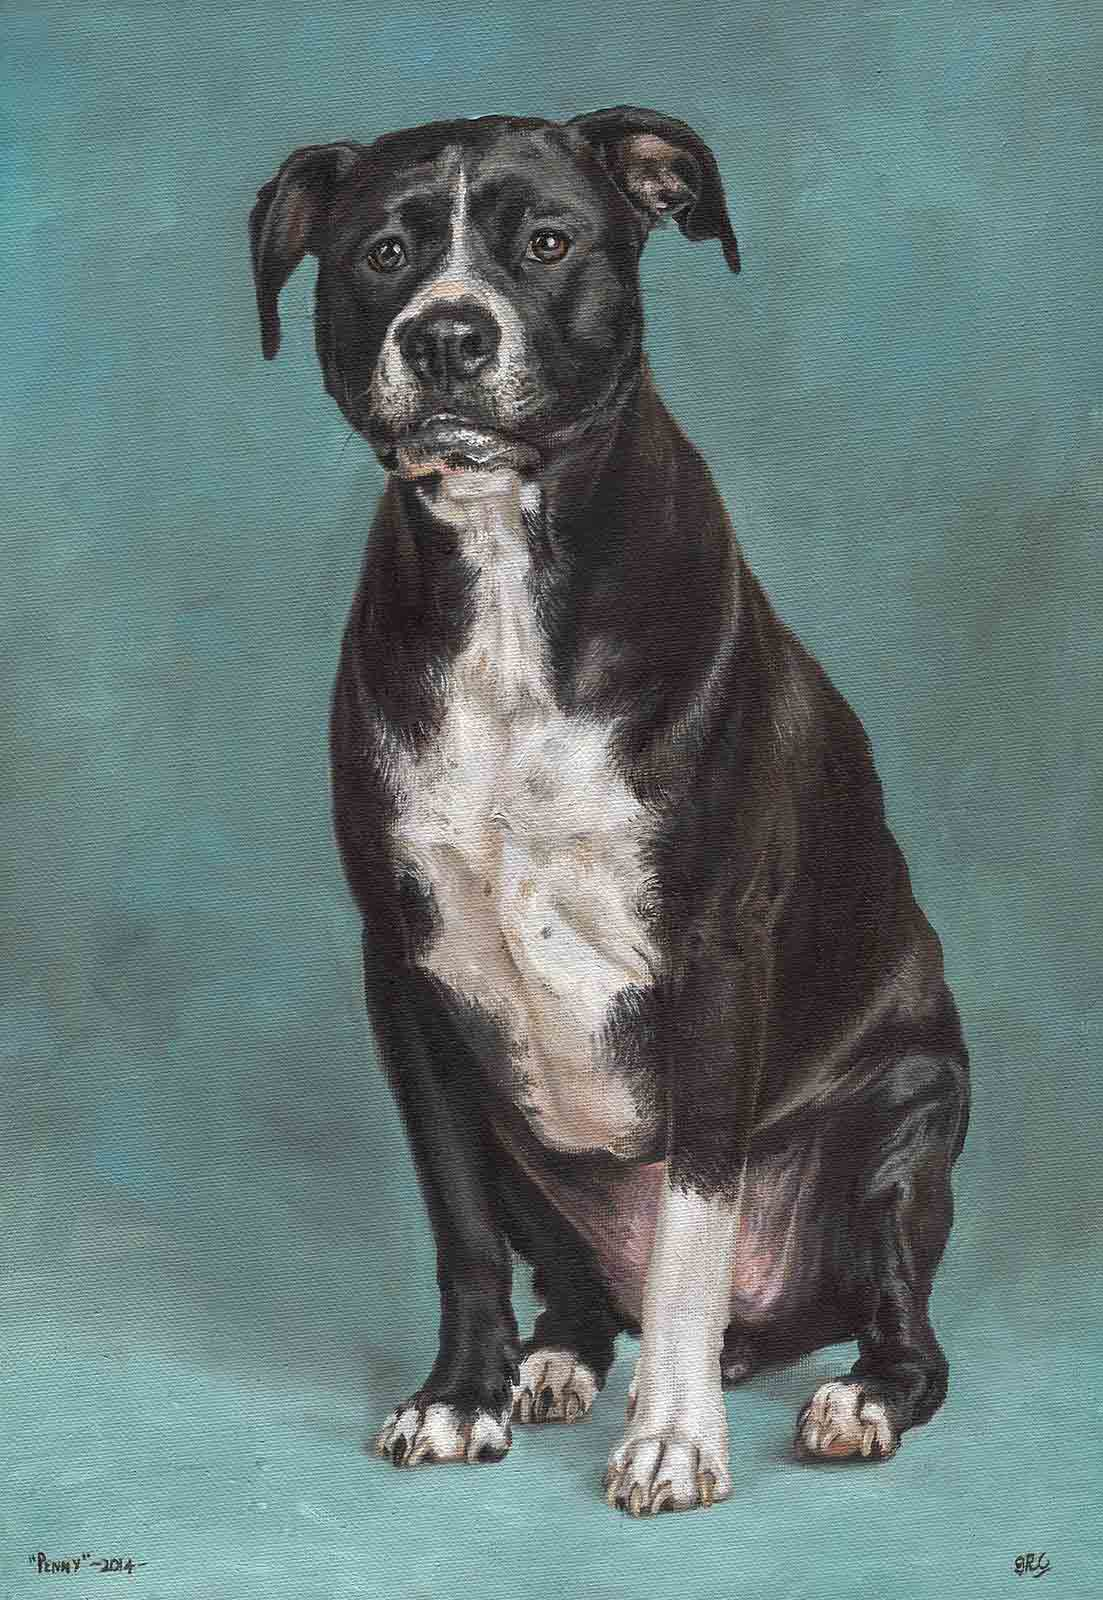 Pitbull dog portrait oil painting on canvas